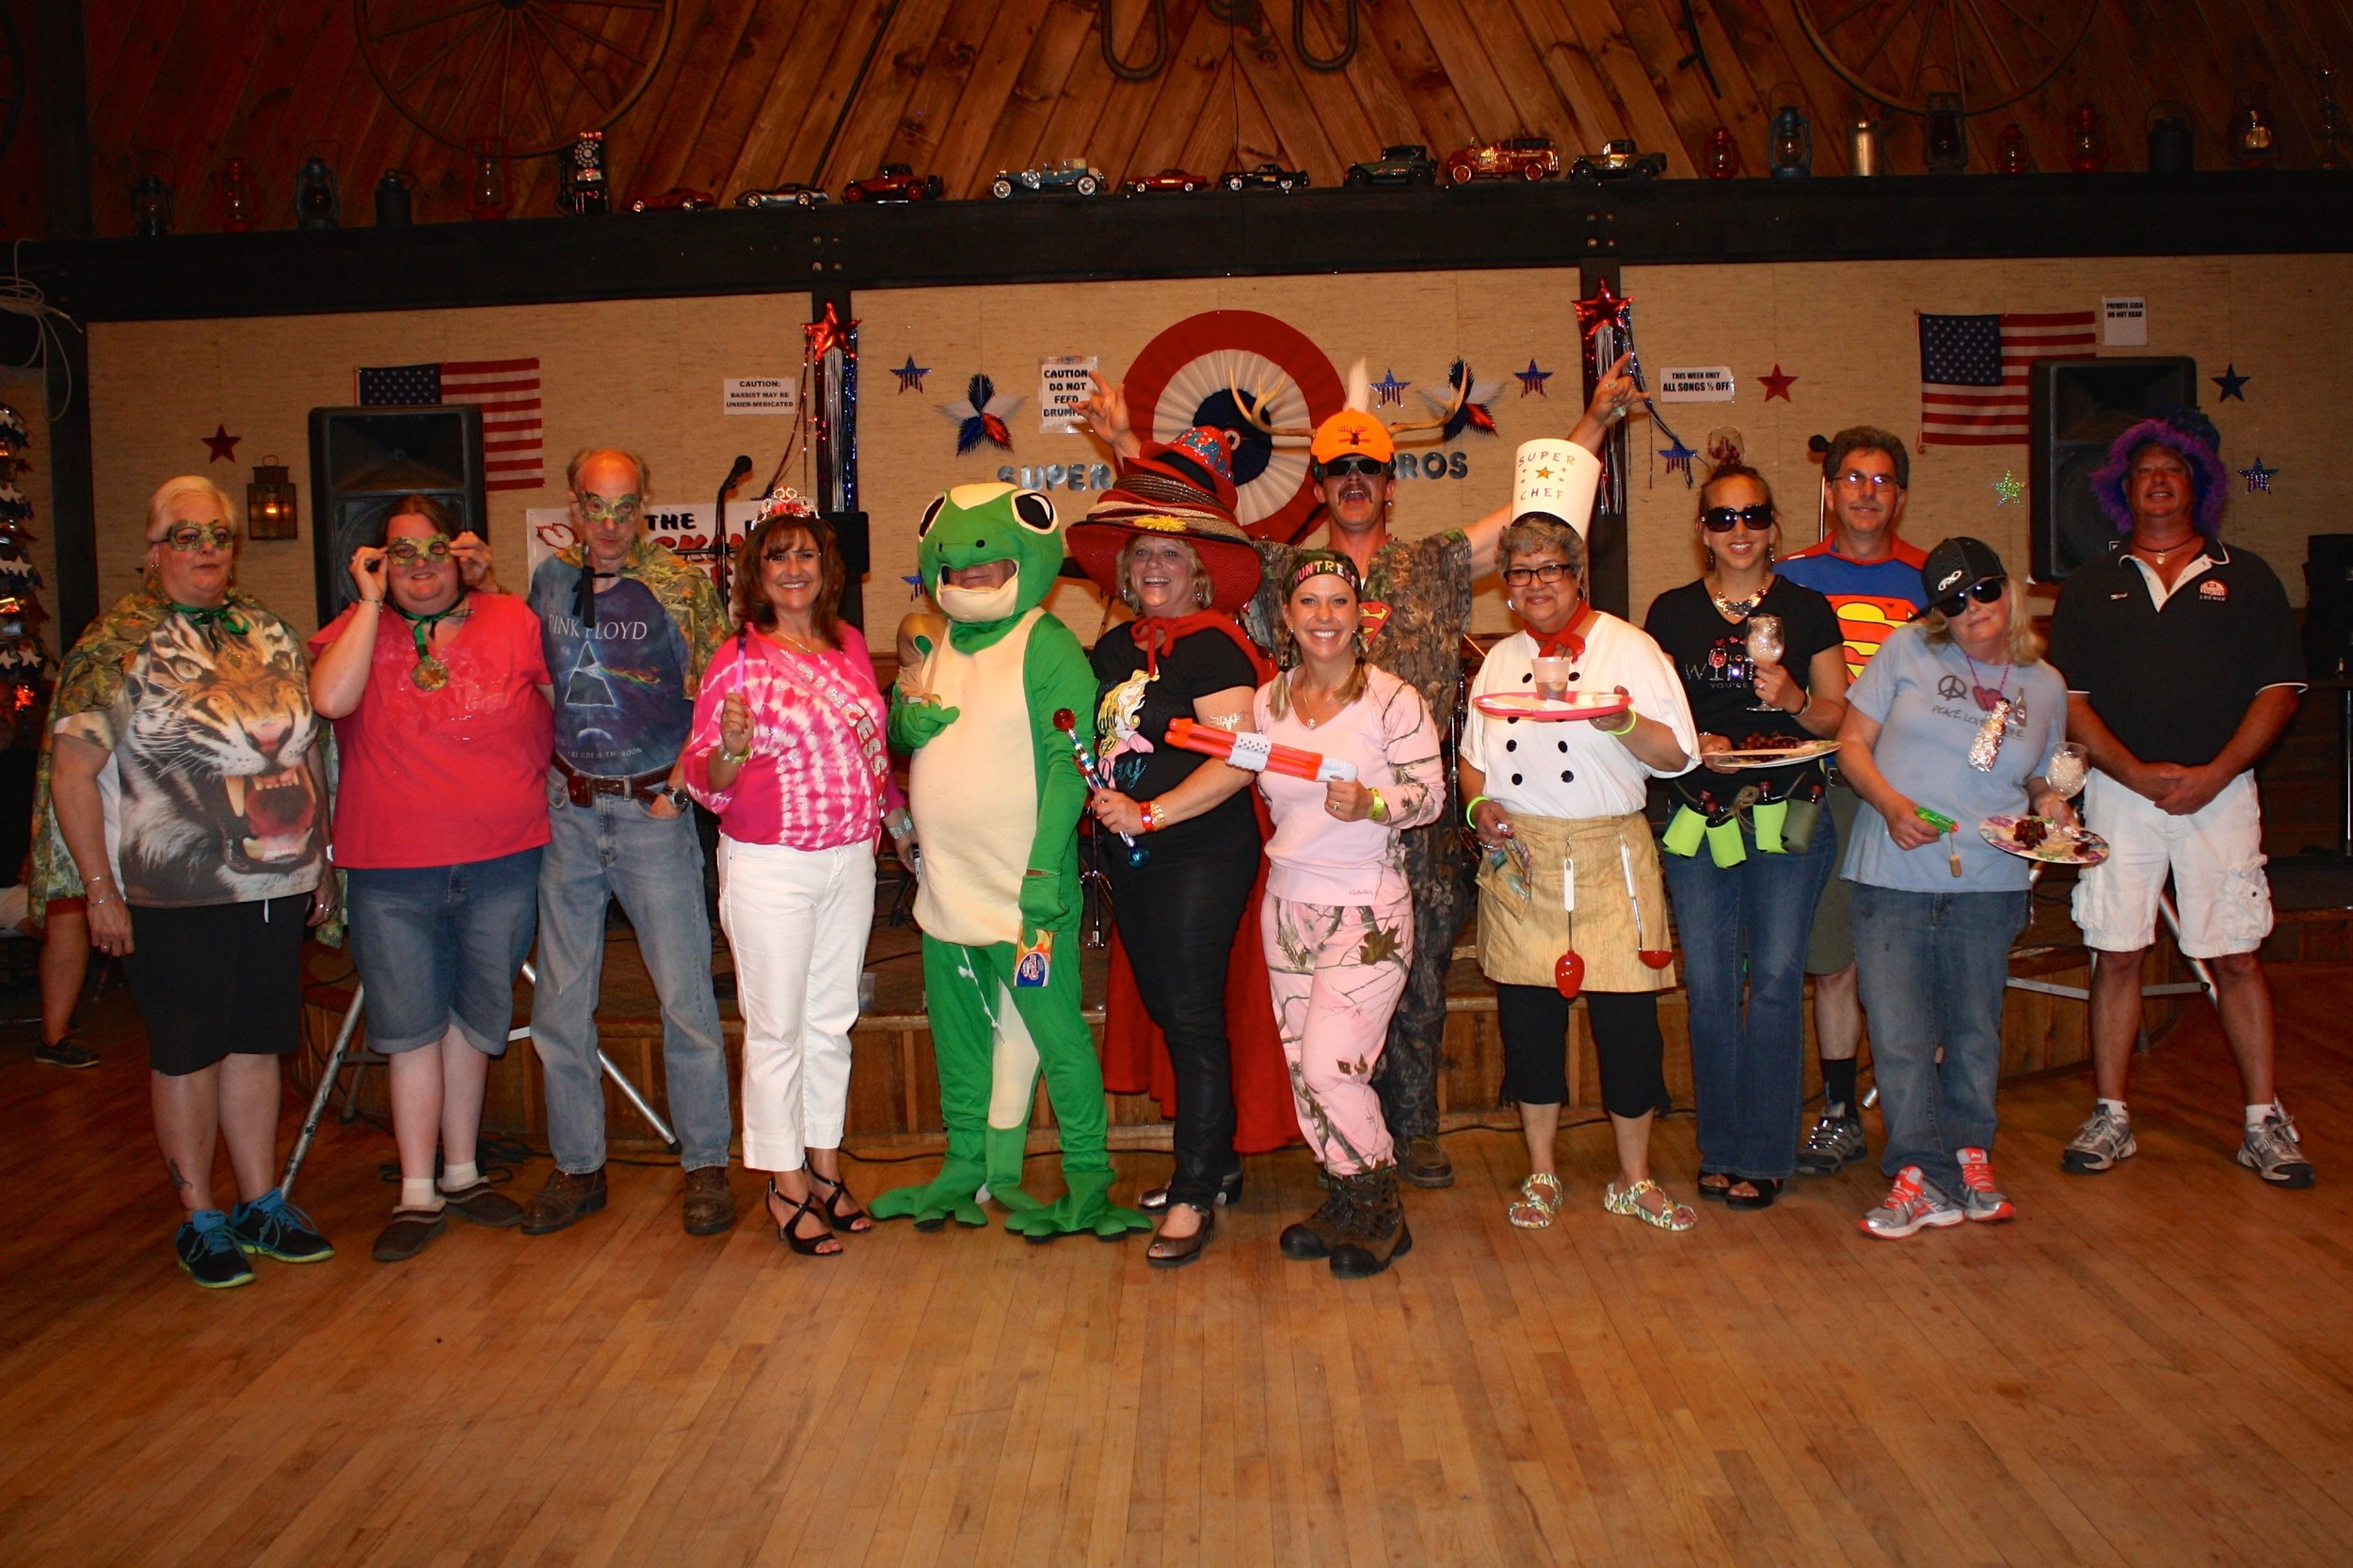 themed activities for adults like the costume contest